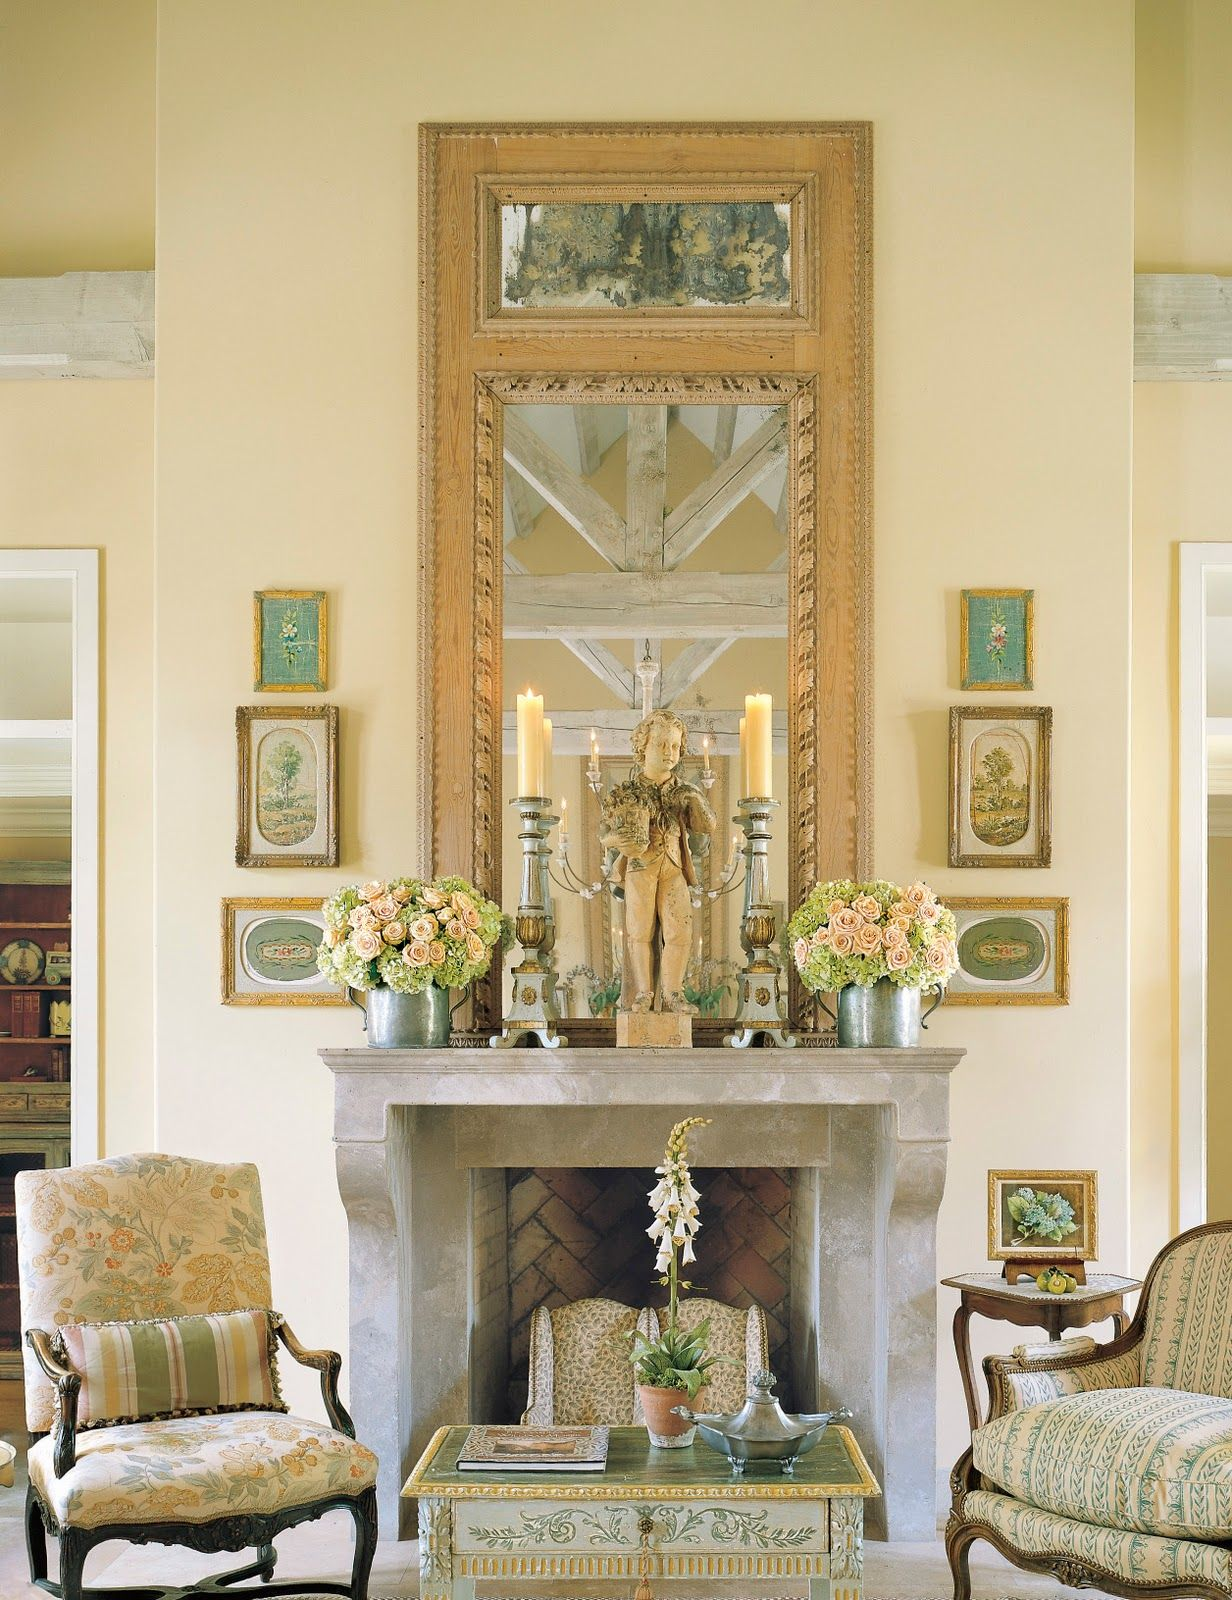 Living Room Of A Tulsa Home By Architect Jack Arnold Interior